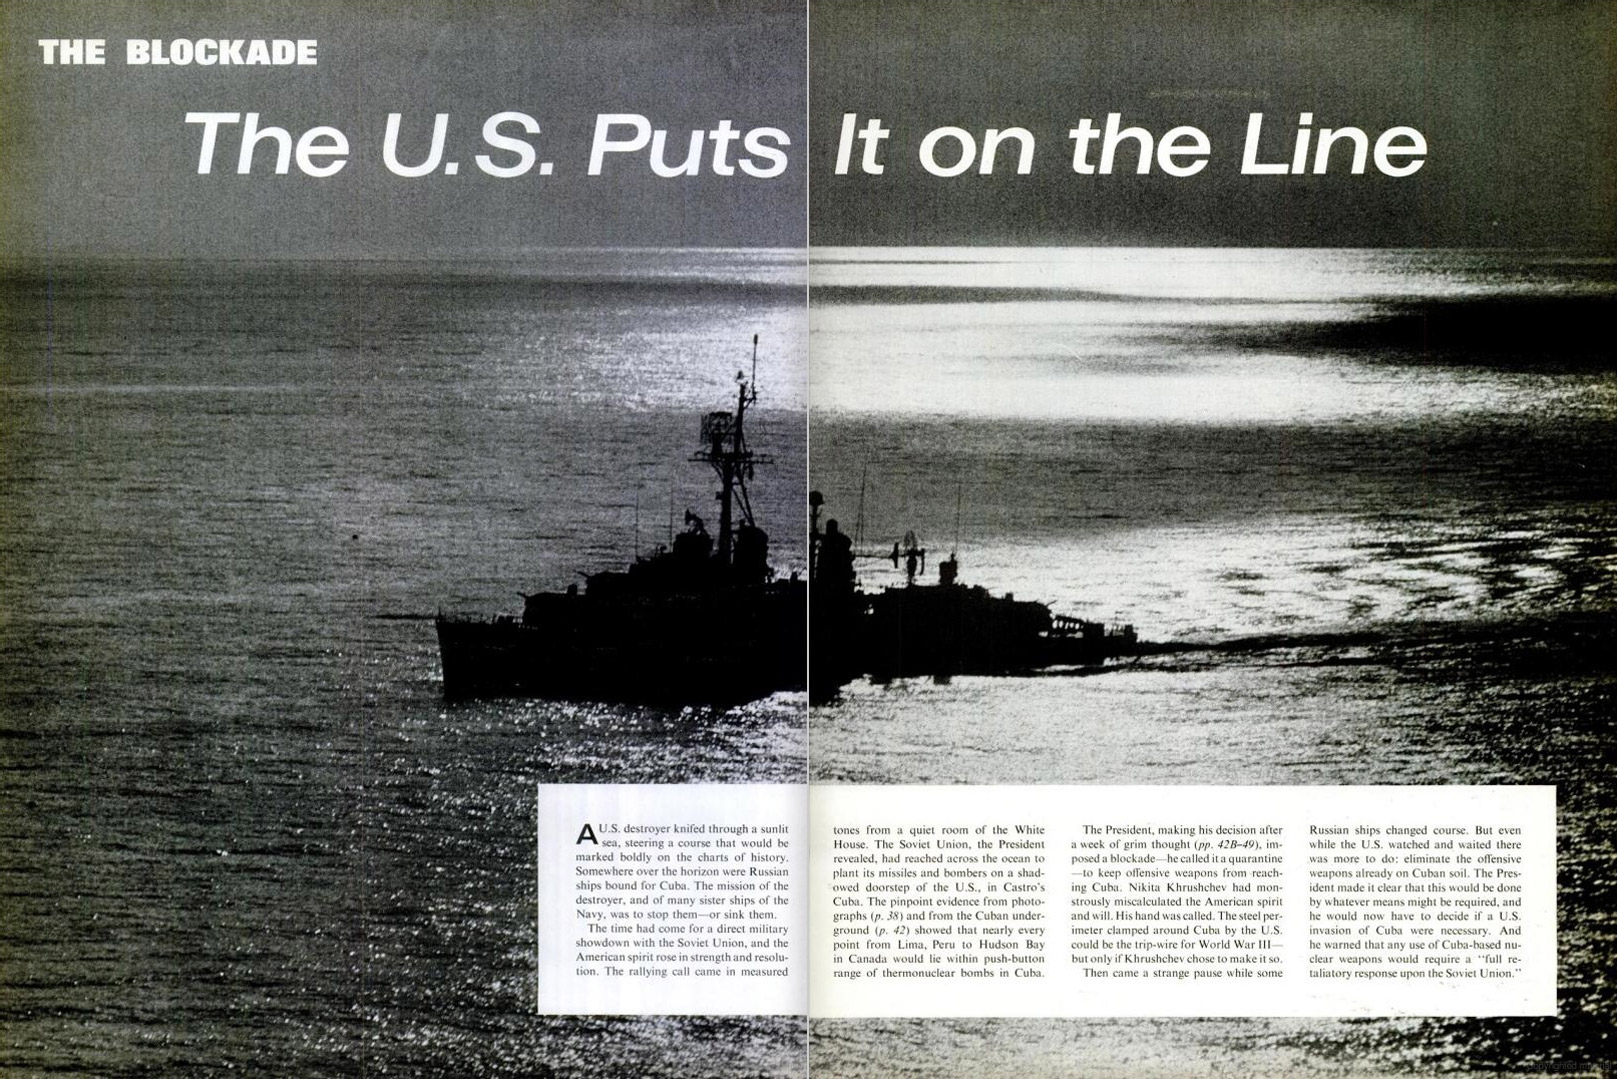 November 2, 1962 issue of LIFE magazine. Spread shows a U.S. destroyer intended to quarantine Cuba from Soviet ships.